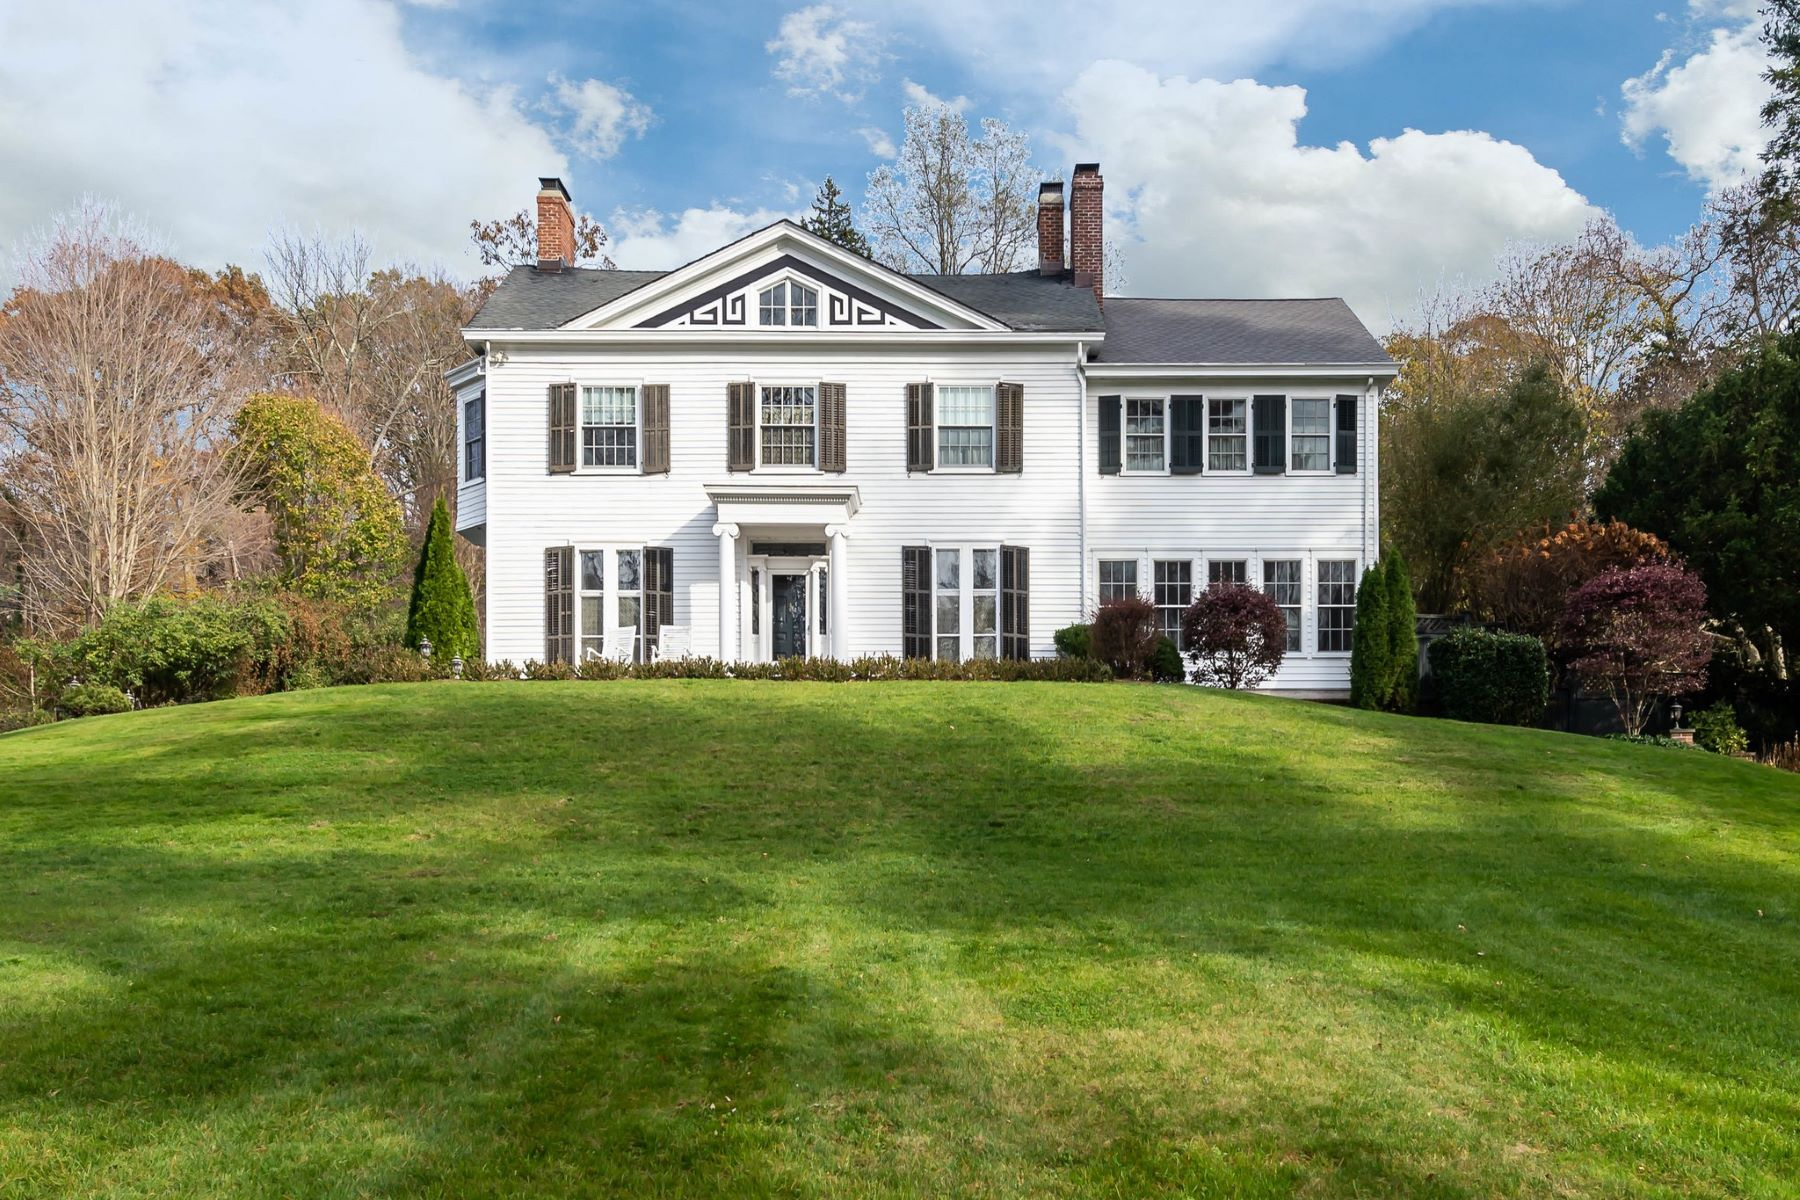 Single Family Homes for Sale at Oyster Bay Cove 197 Cove Oyster Bay Cove, New York 11771 United States